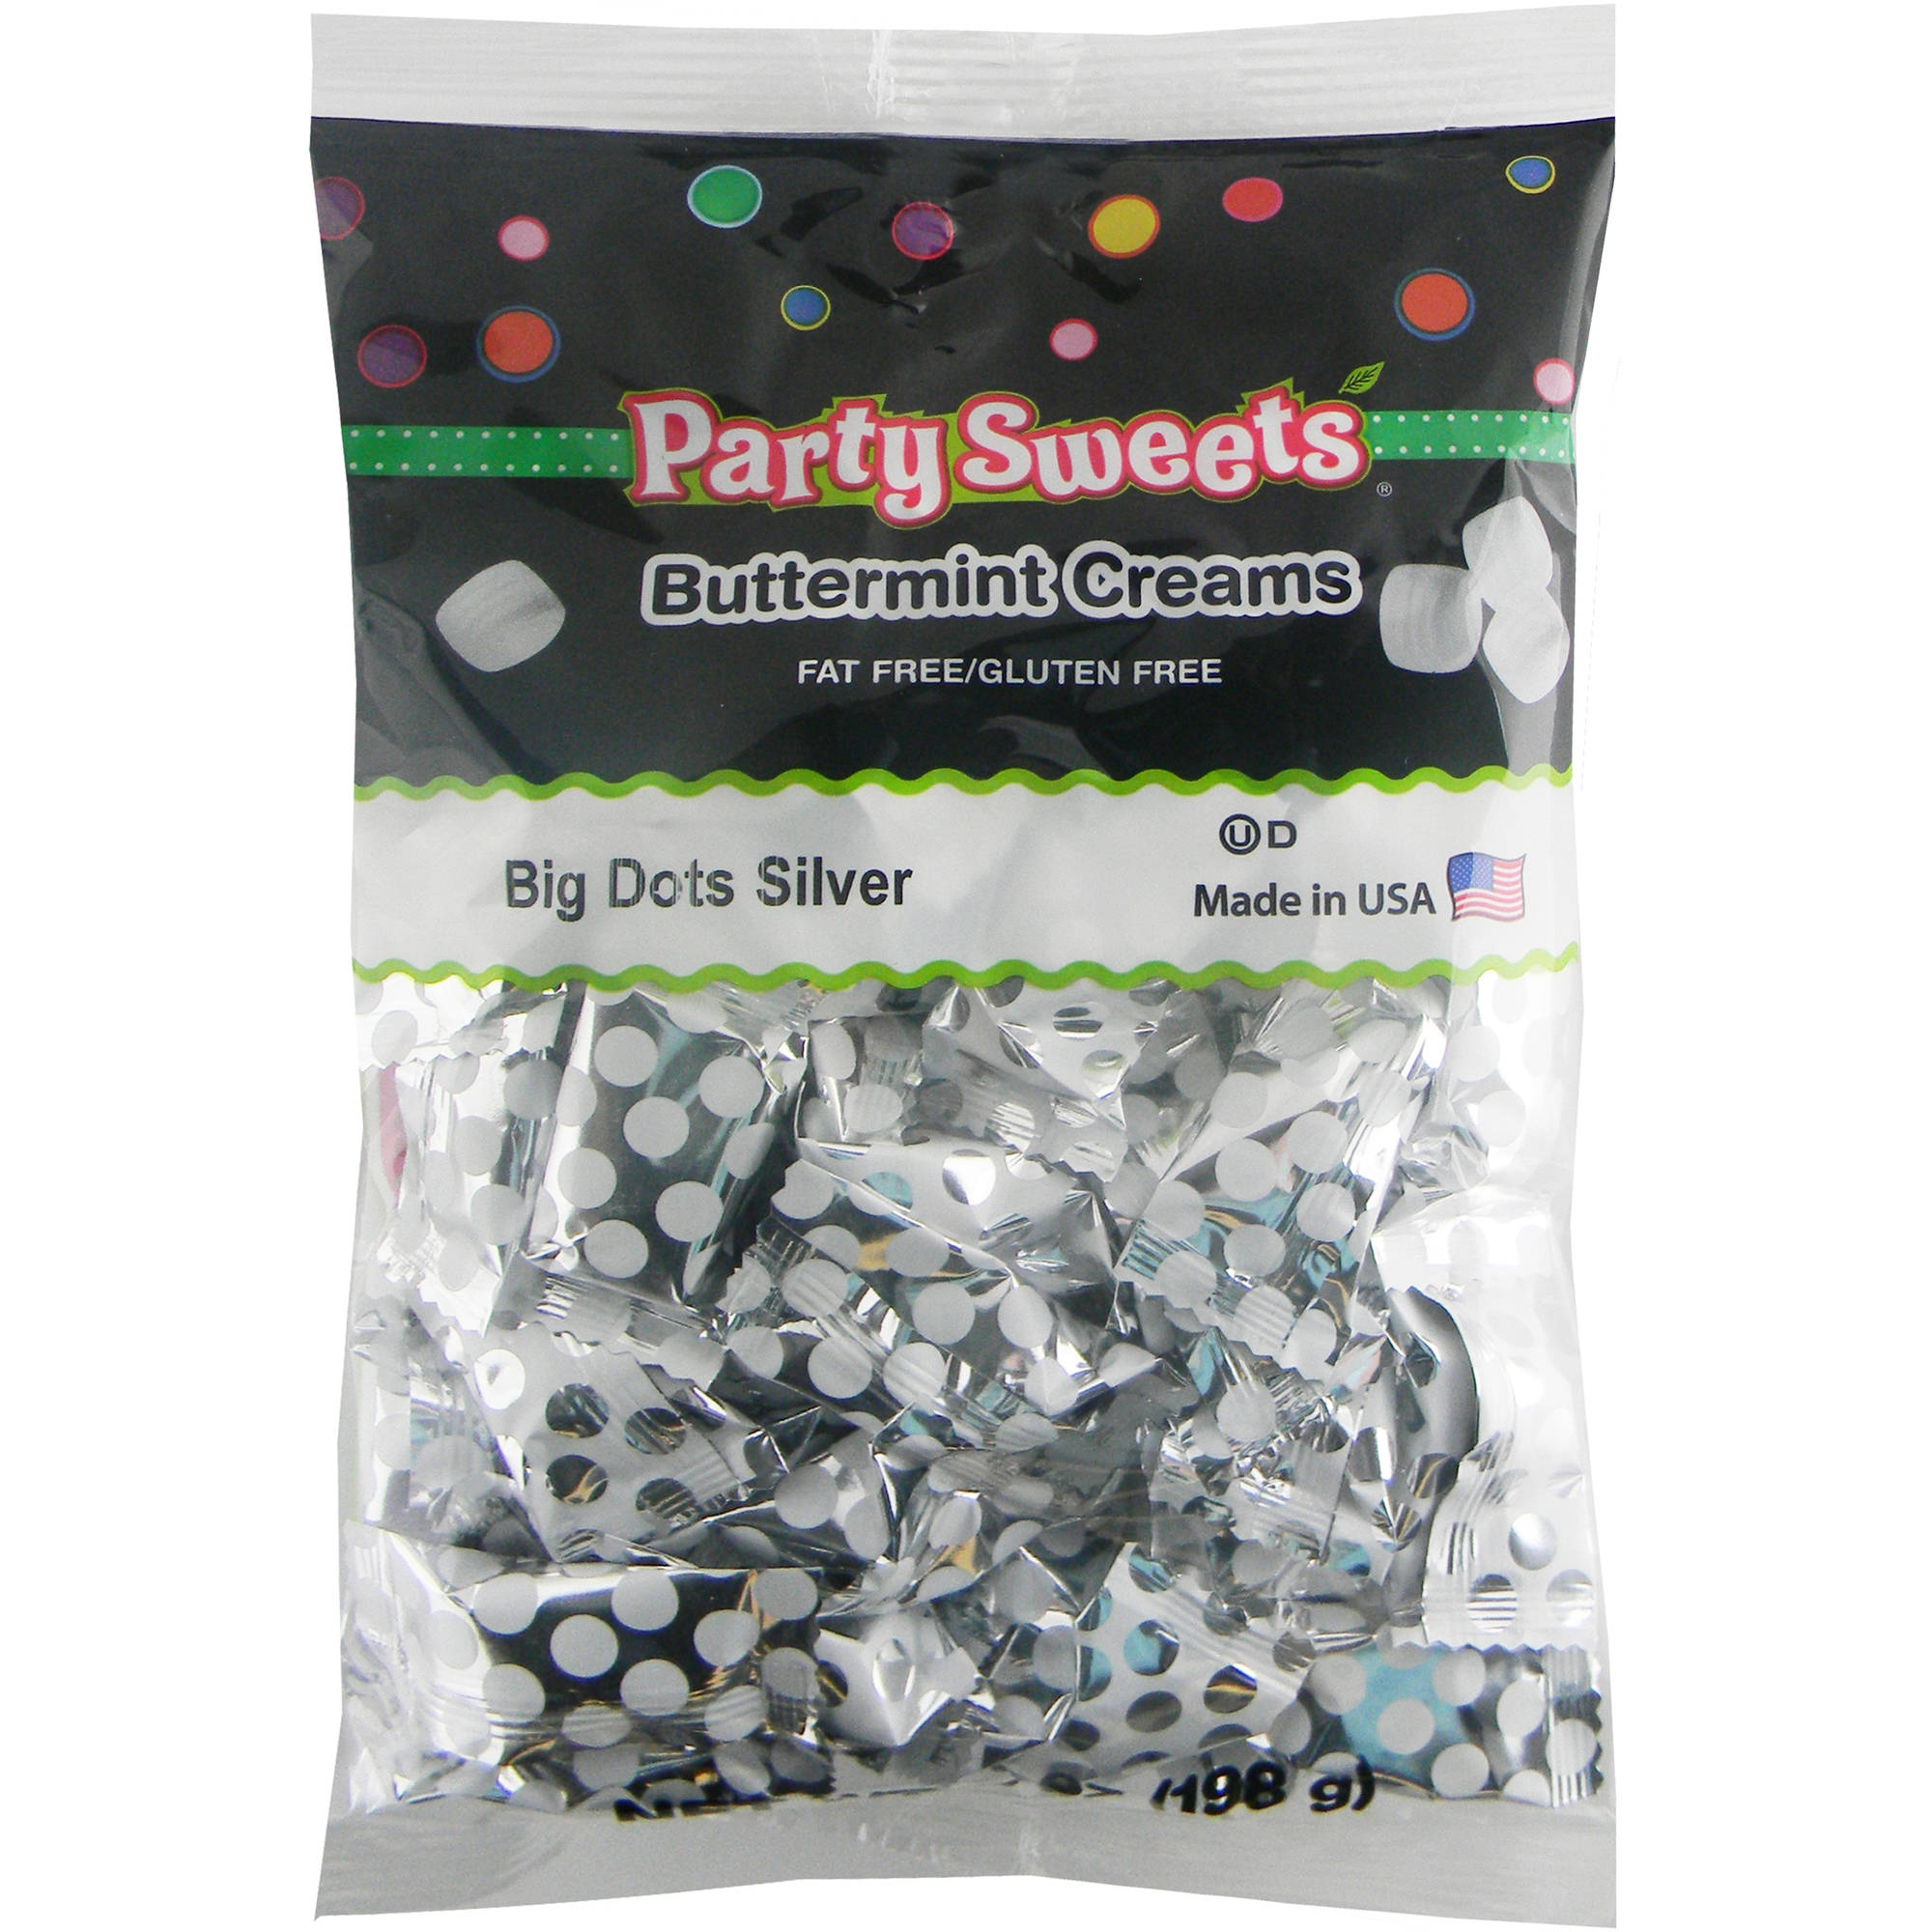 Party Sweets Big Dots Silver Buttermint Creams Candy, 7 oz